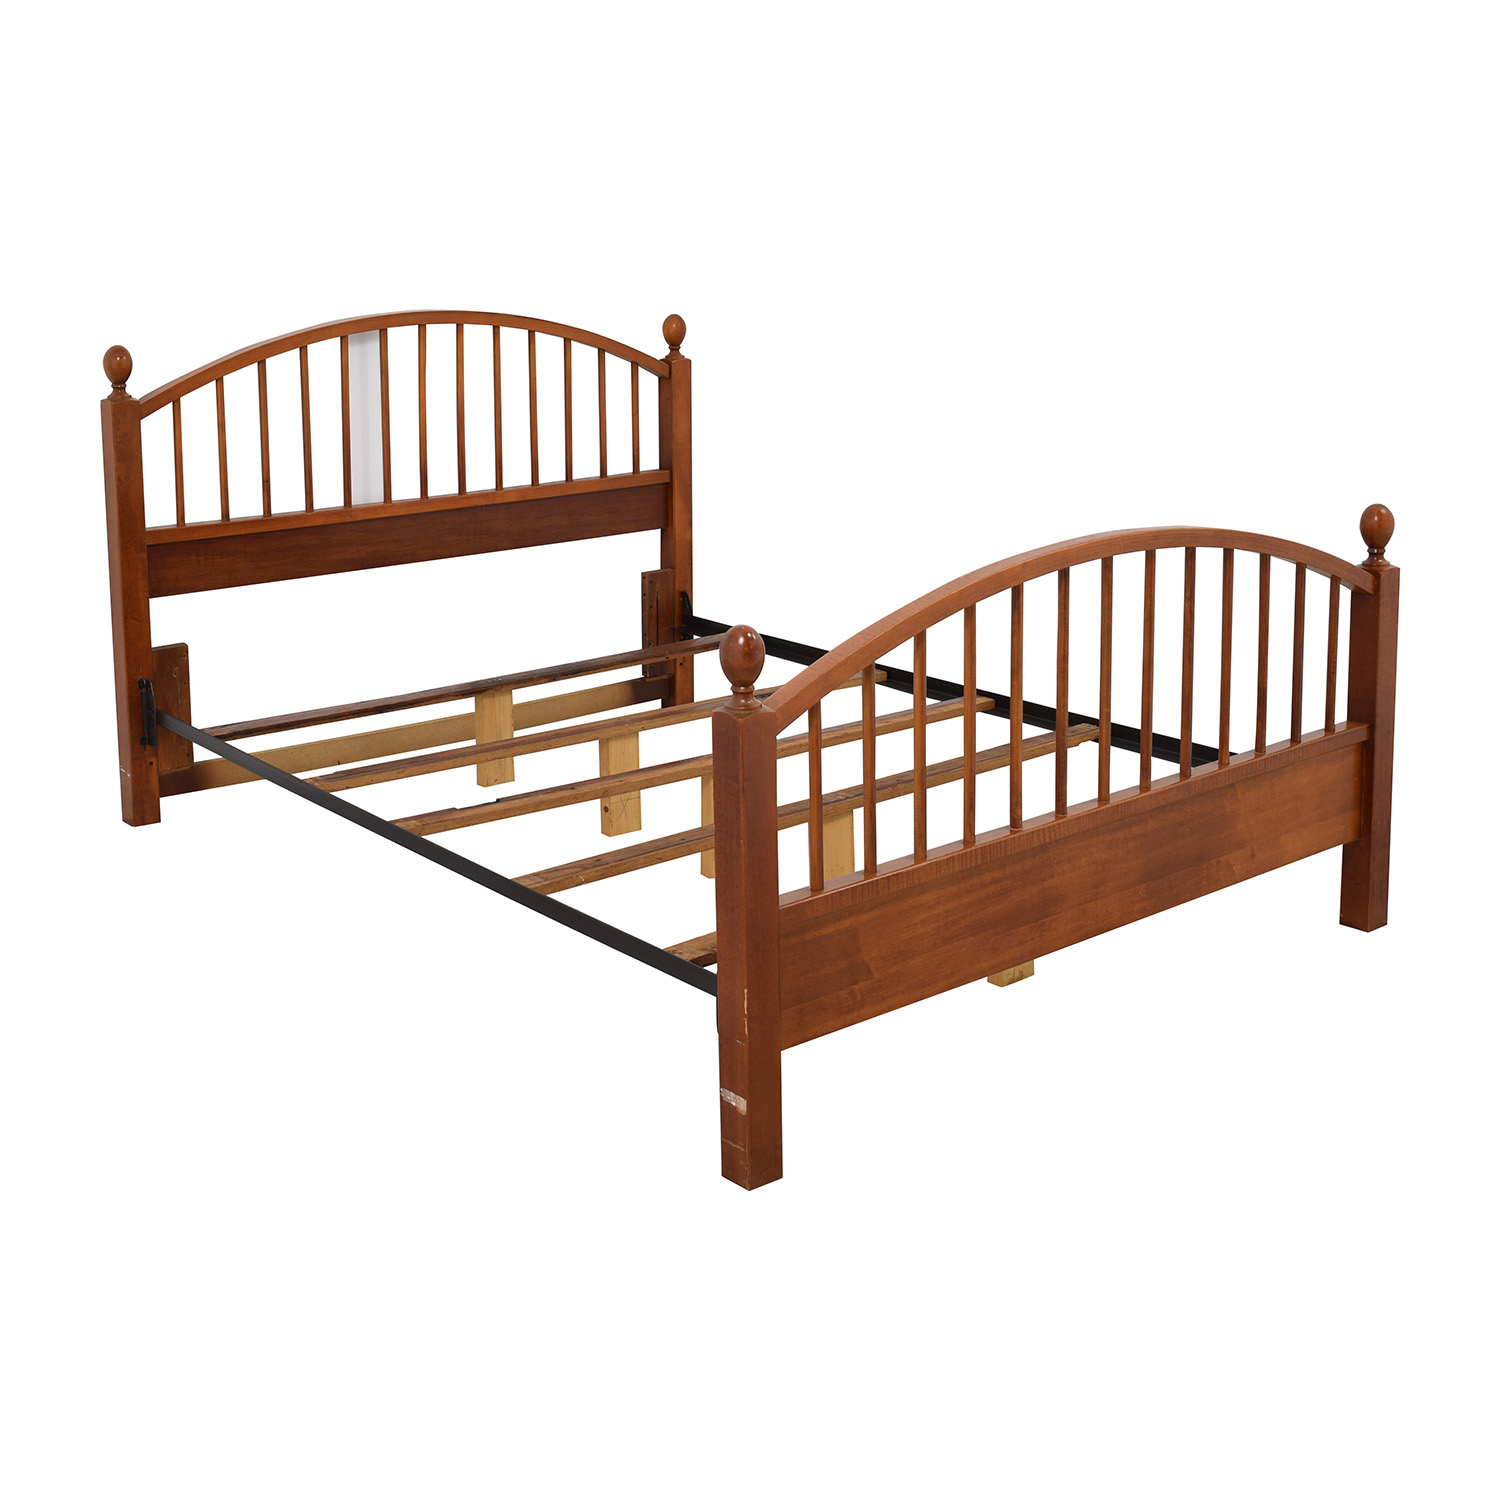 77 off solid oak caged queen bed frame beds for Second hand bunk beds